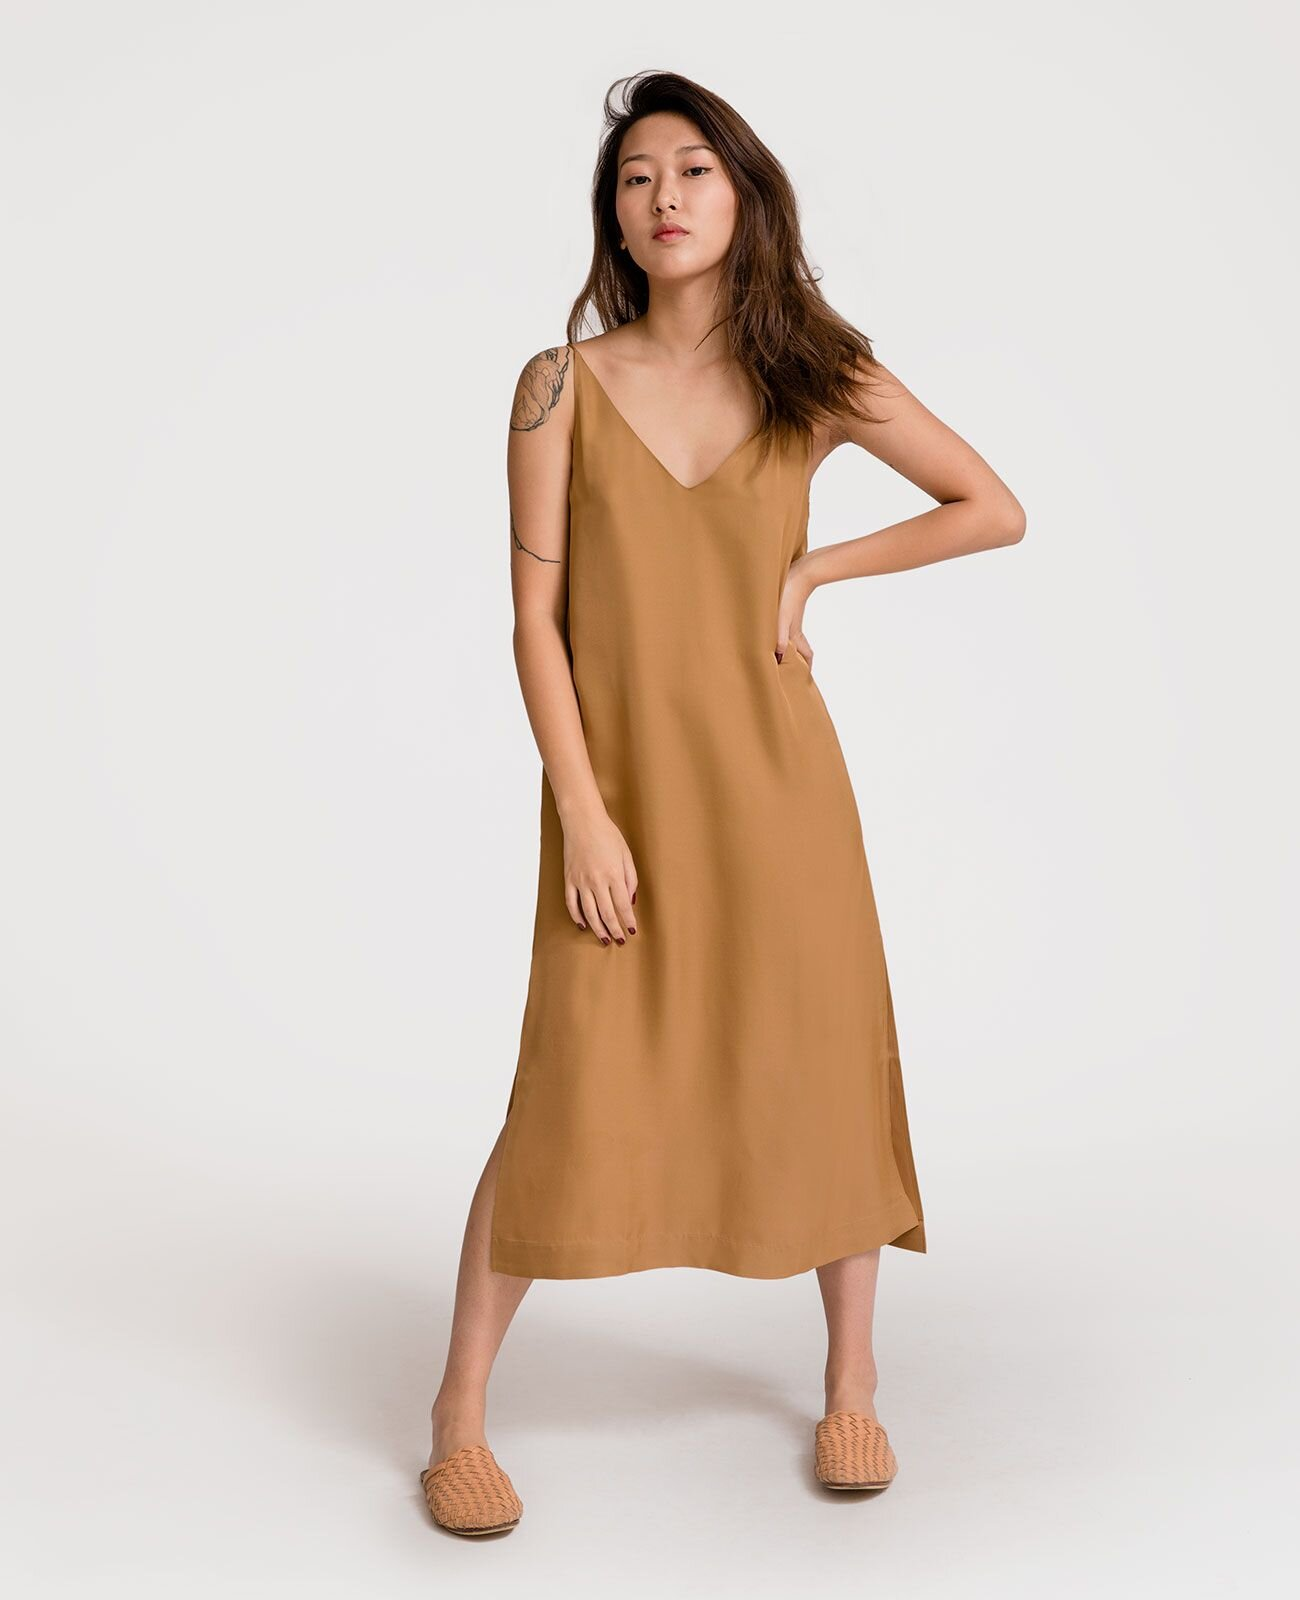 ethical fashion starter brands | reading my tea leaves